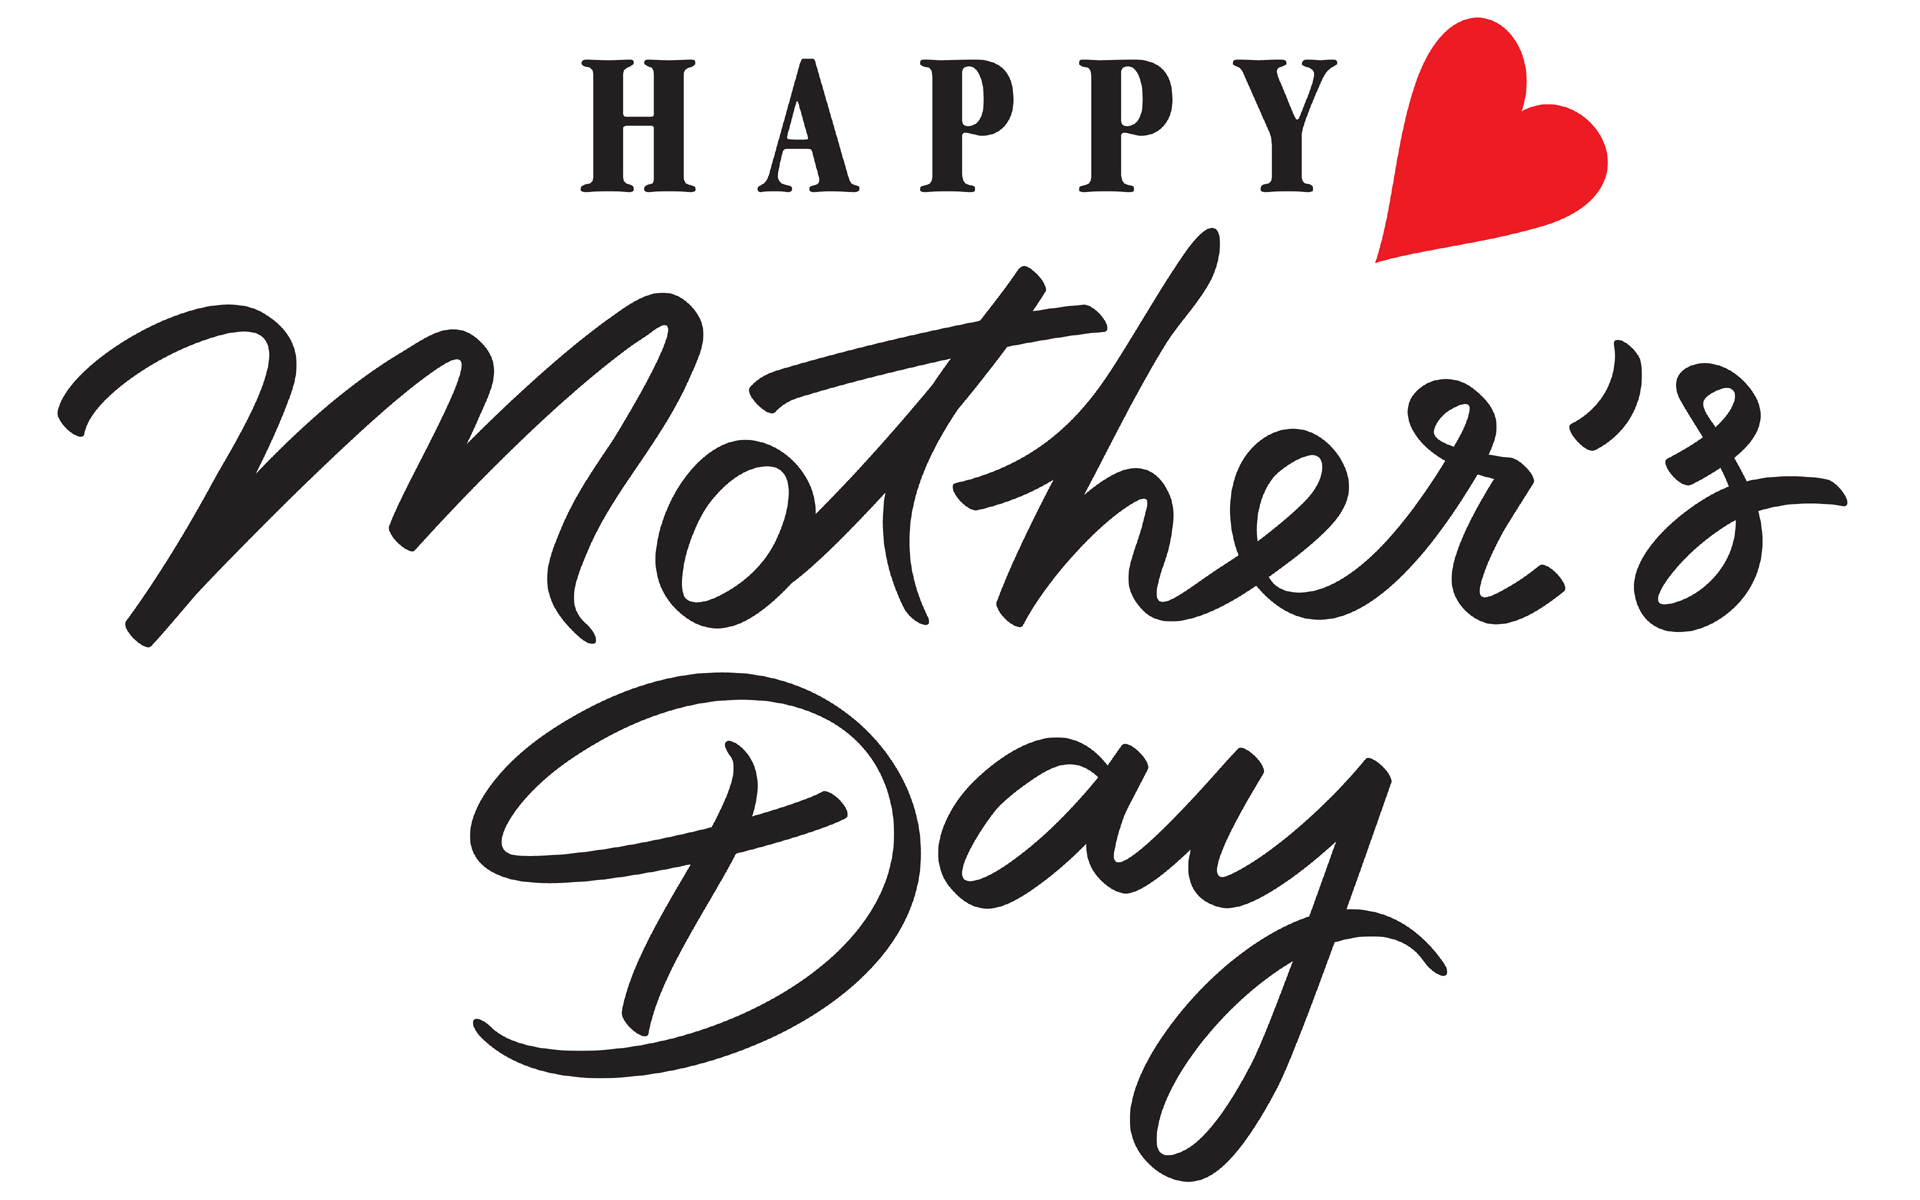 Happy Mothers Day Images 2020, Pictures, Photos, HD